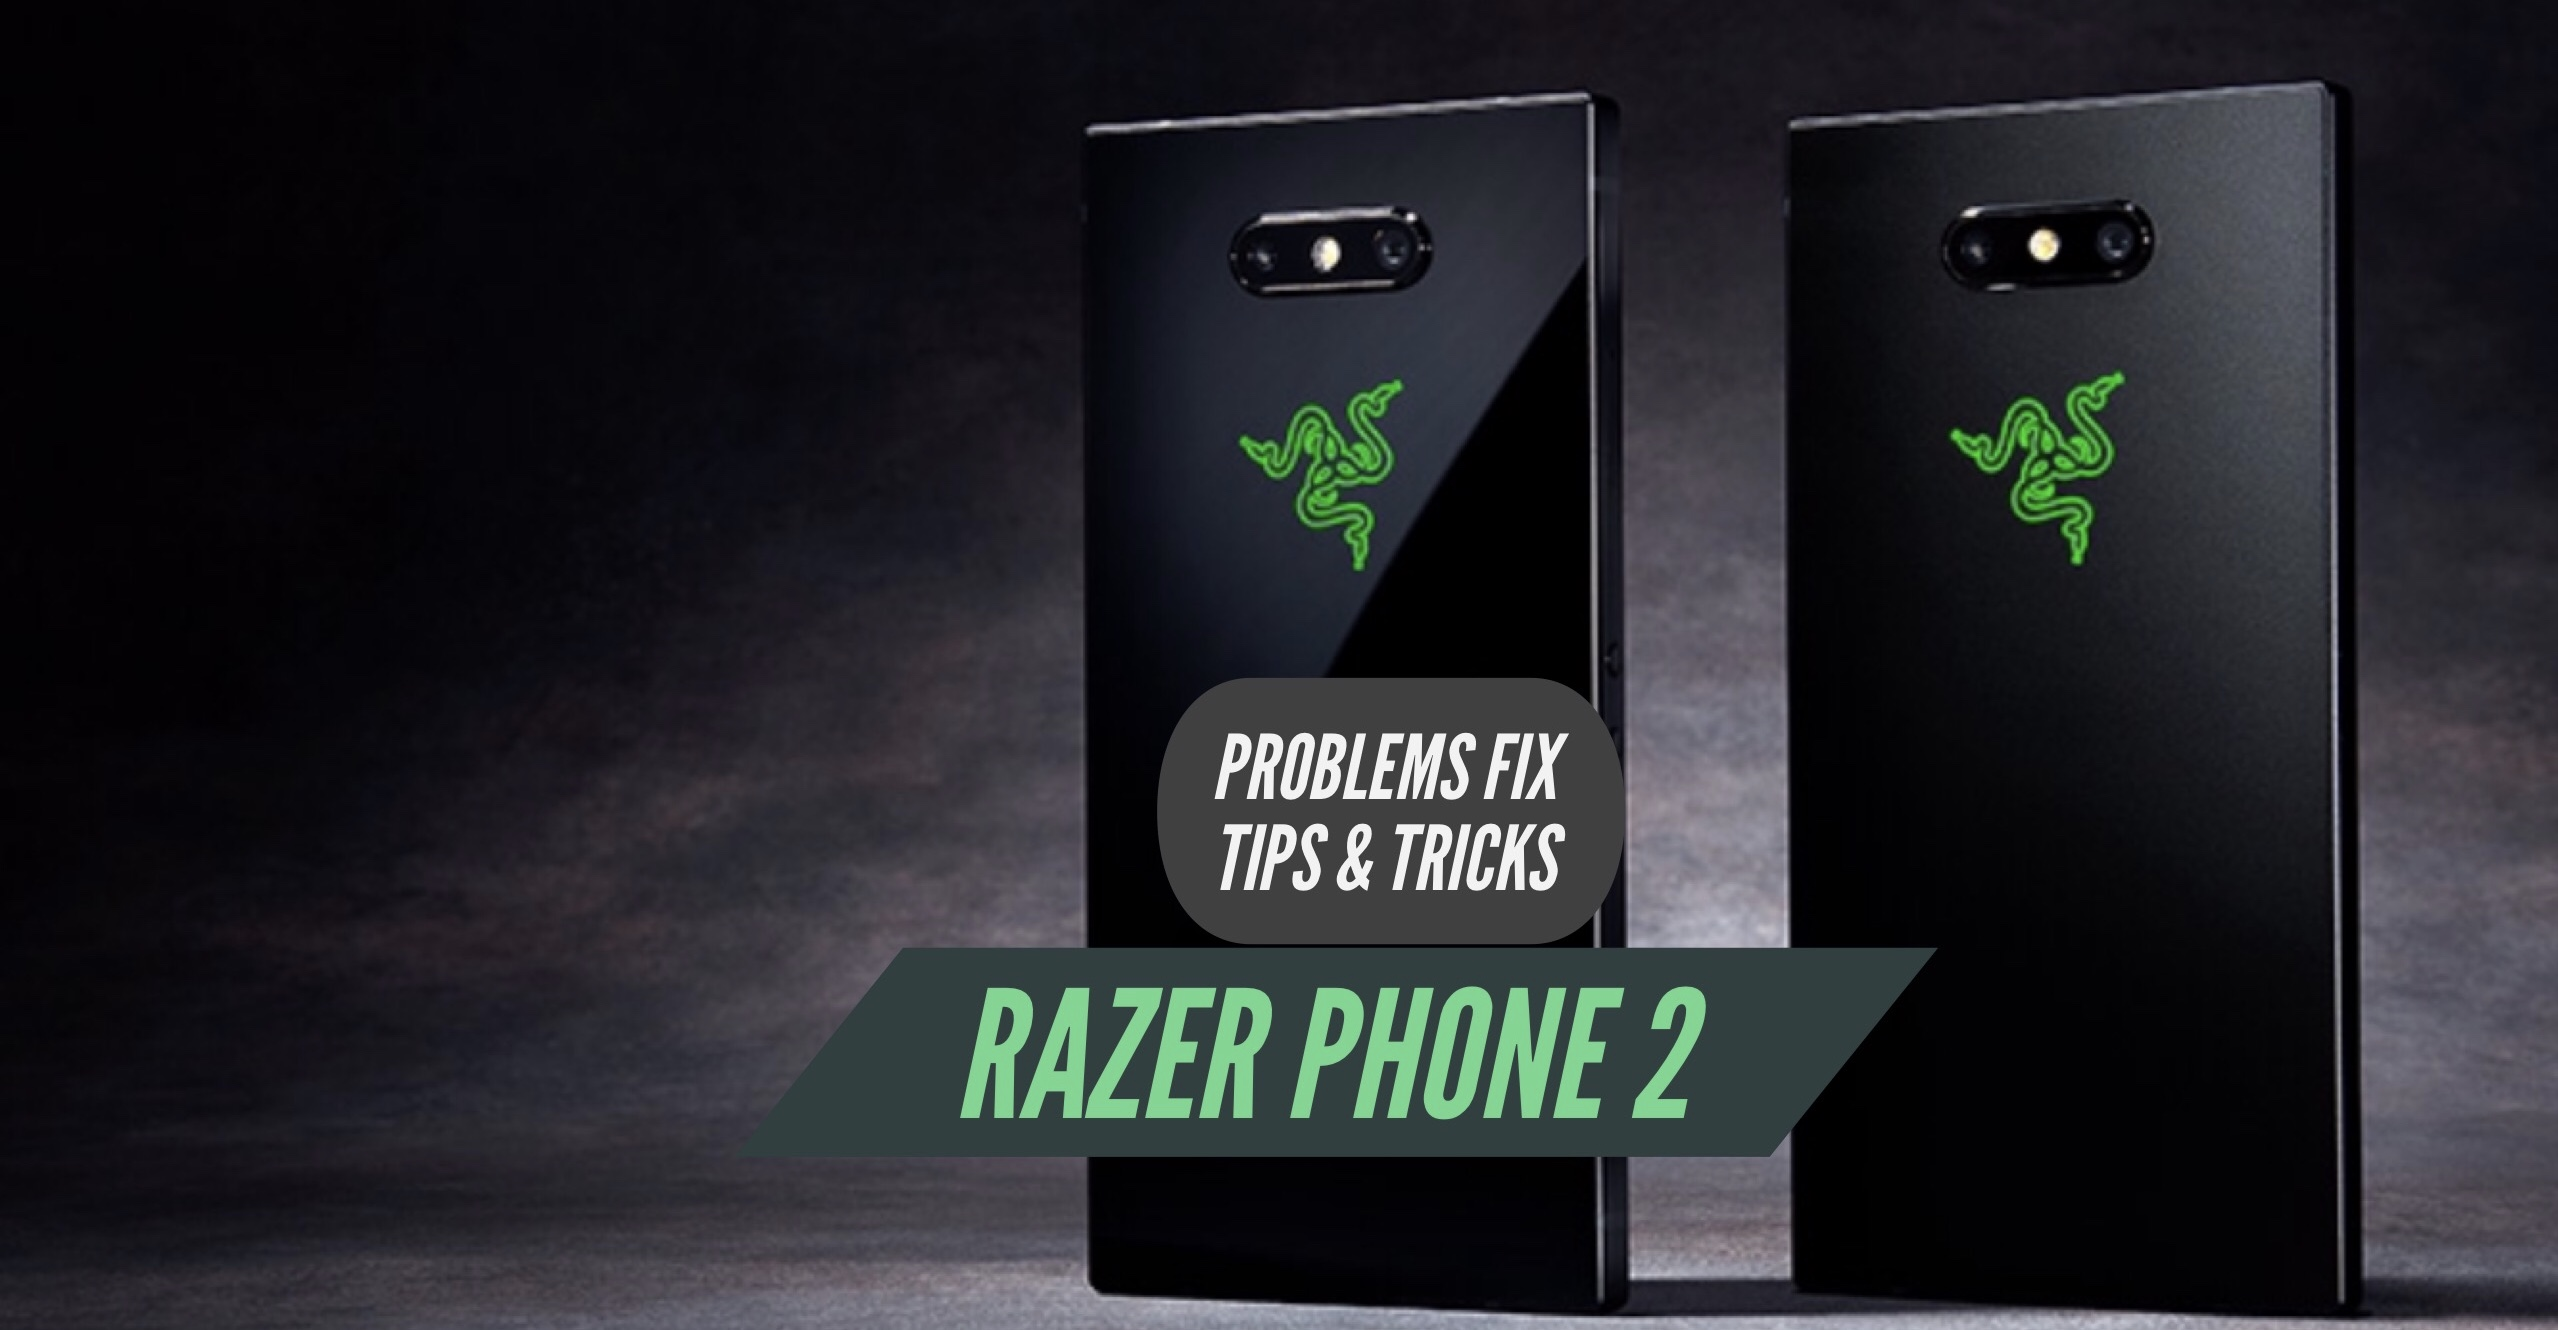 Razer Phone 2 Most Common Problems & Issues + Solution Fix!